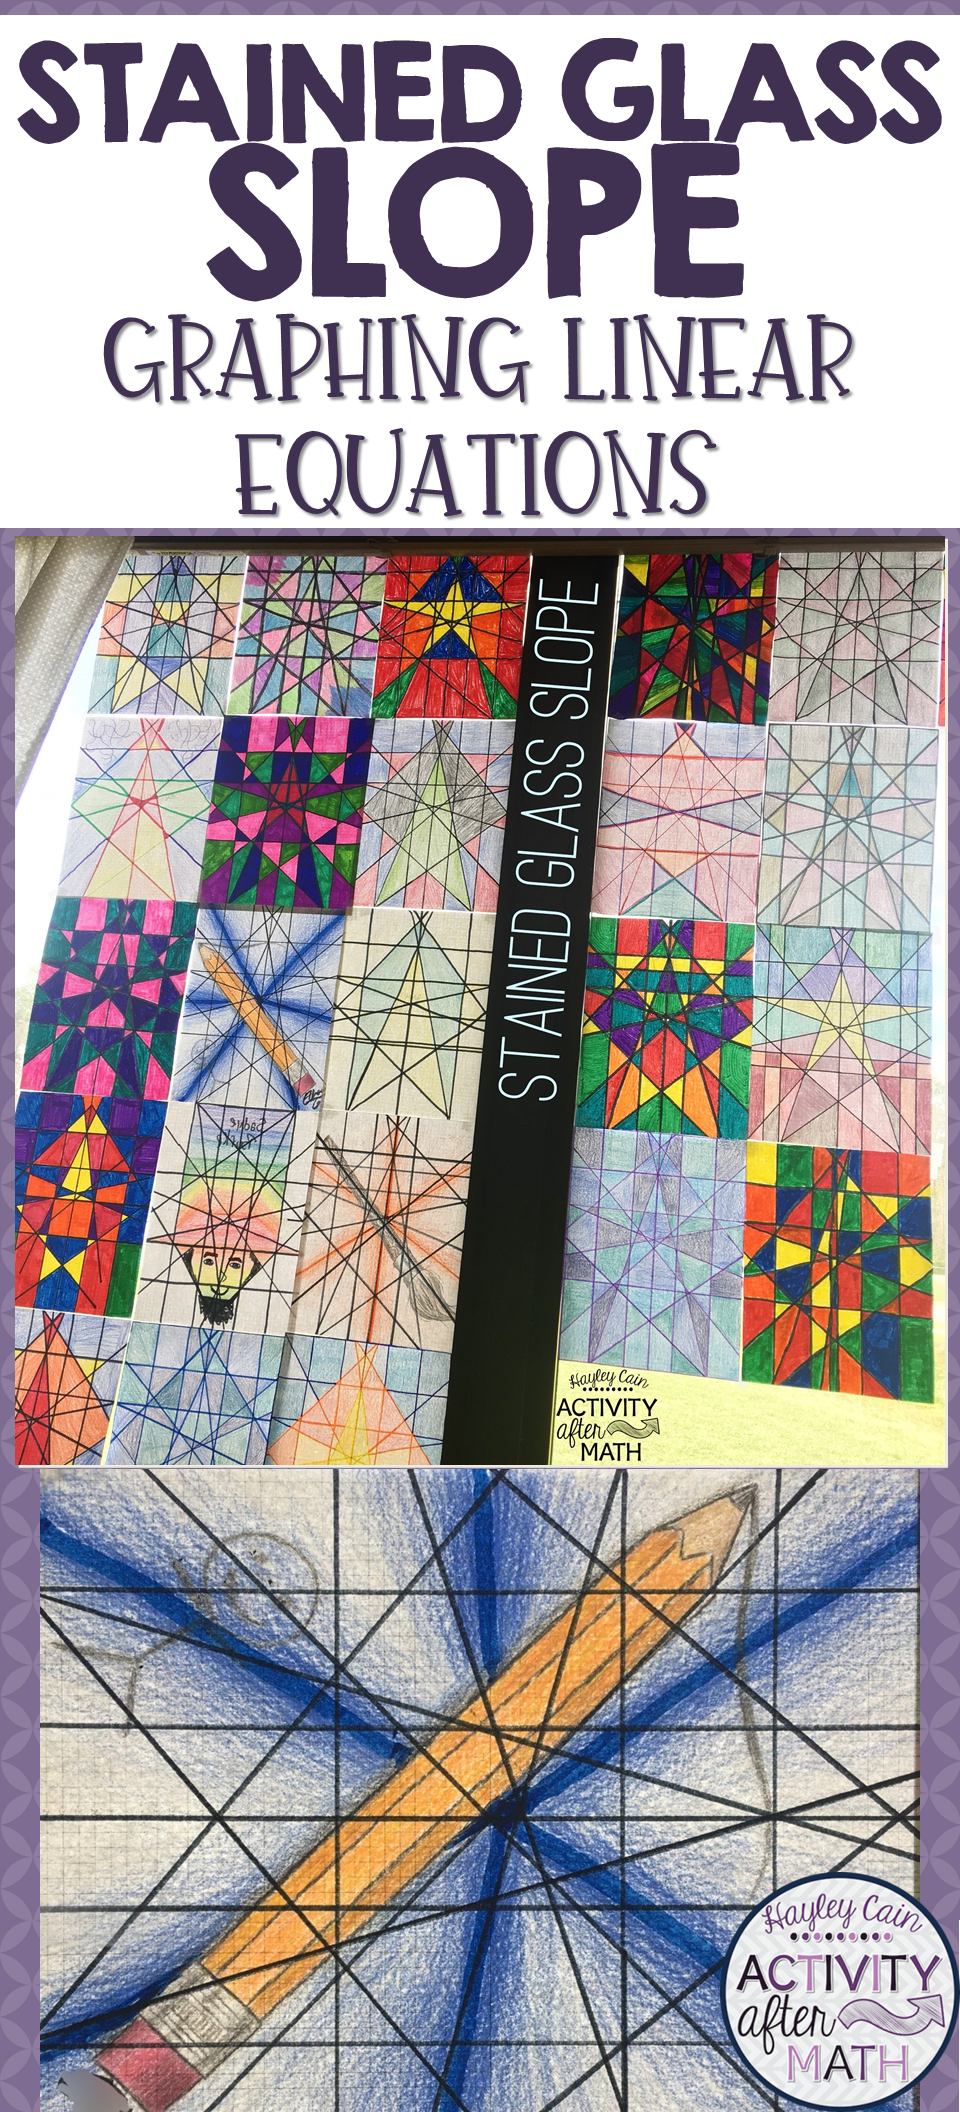 Stained glass slope graphing linear equations in slope intercept stained glass slope graphing linear equations in slope intercept form falaconquin